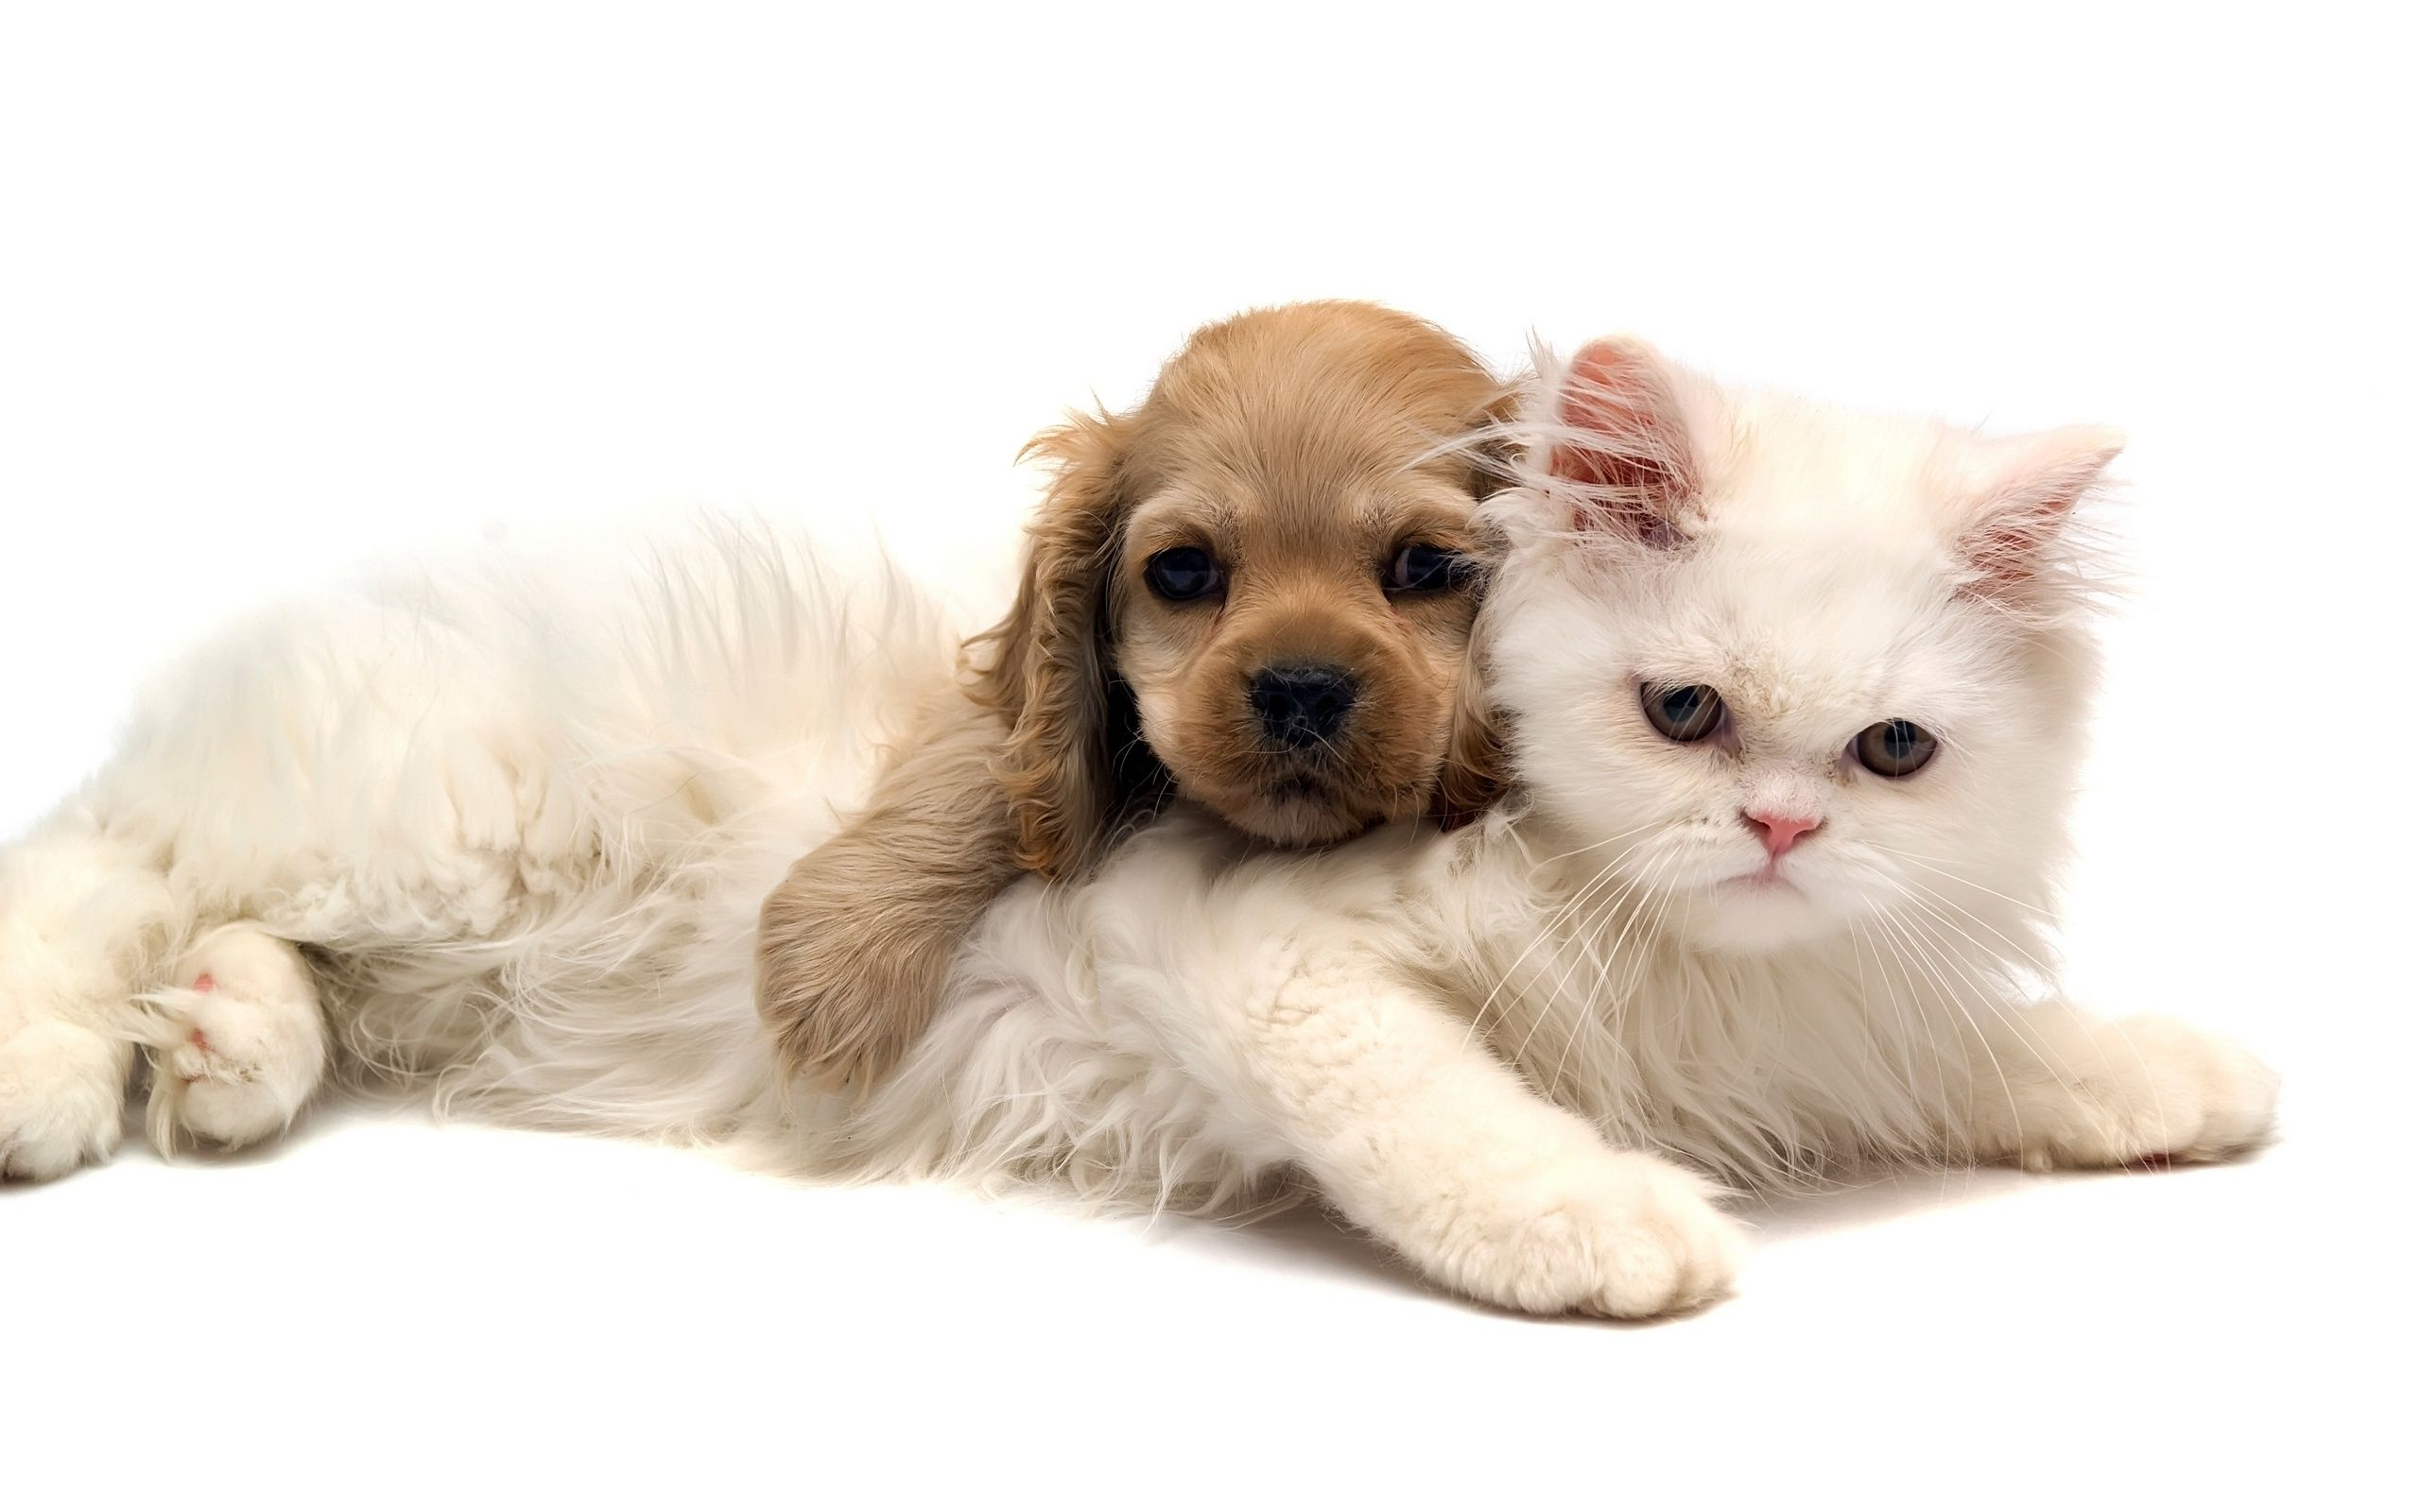 Cute Dog And Cat Wallpaper Wallpapers Backgrounds Images Art Photos Cute Cats And Dogs Kittens And Puppies Cute Puppies